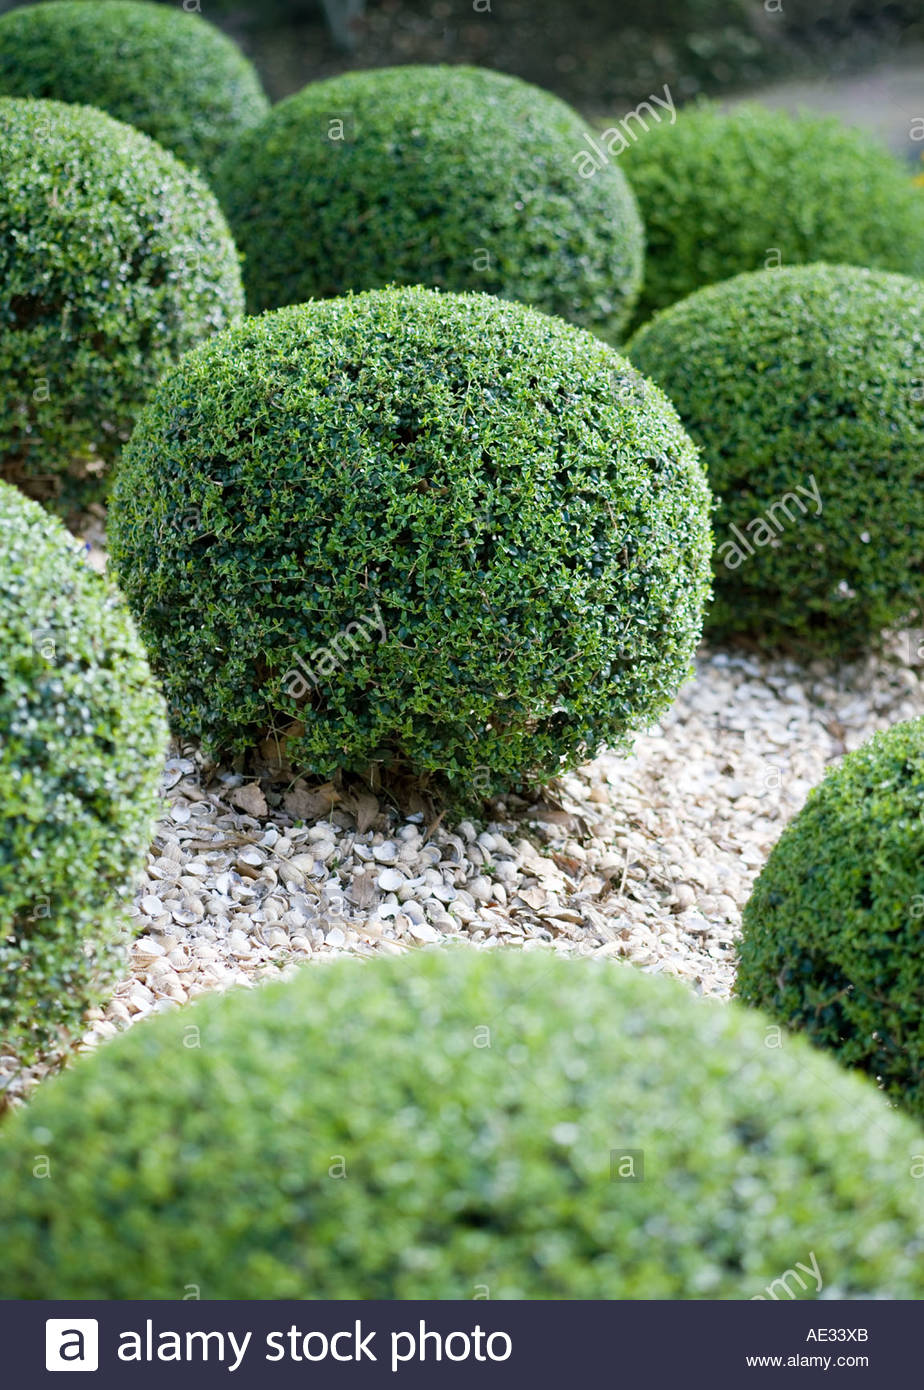 Box Hedge Plants Trained Into Round Ball Bush Shapes In Topiary Garden